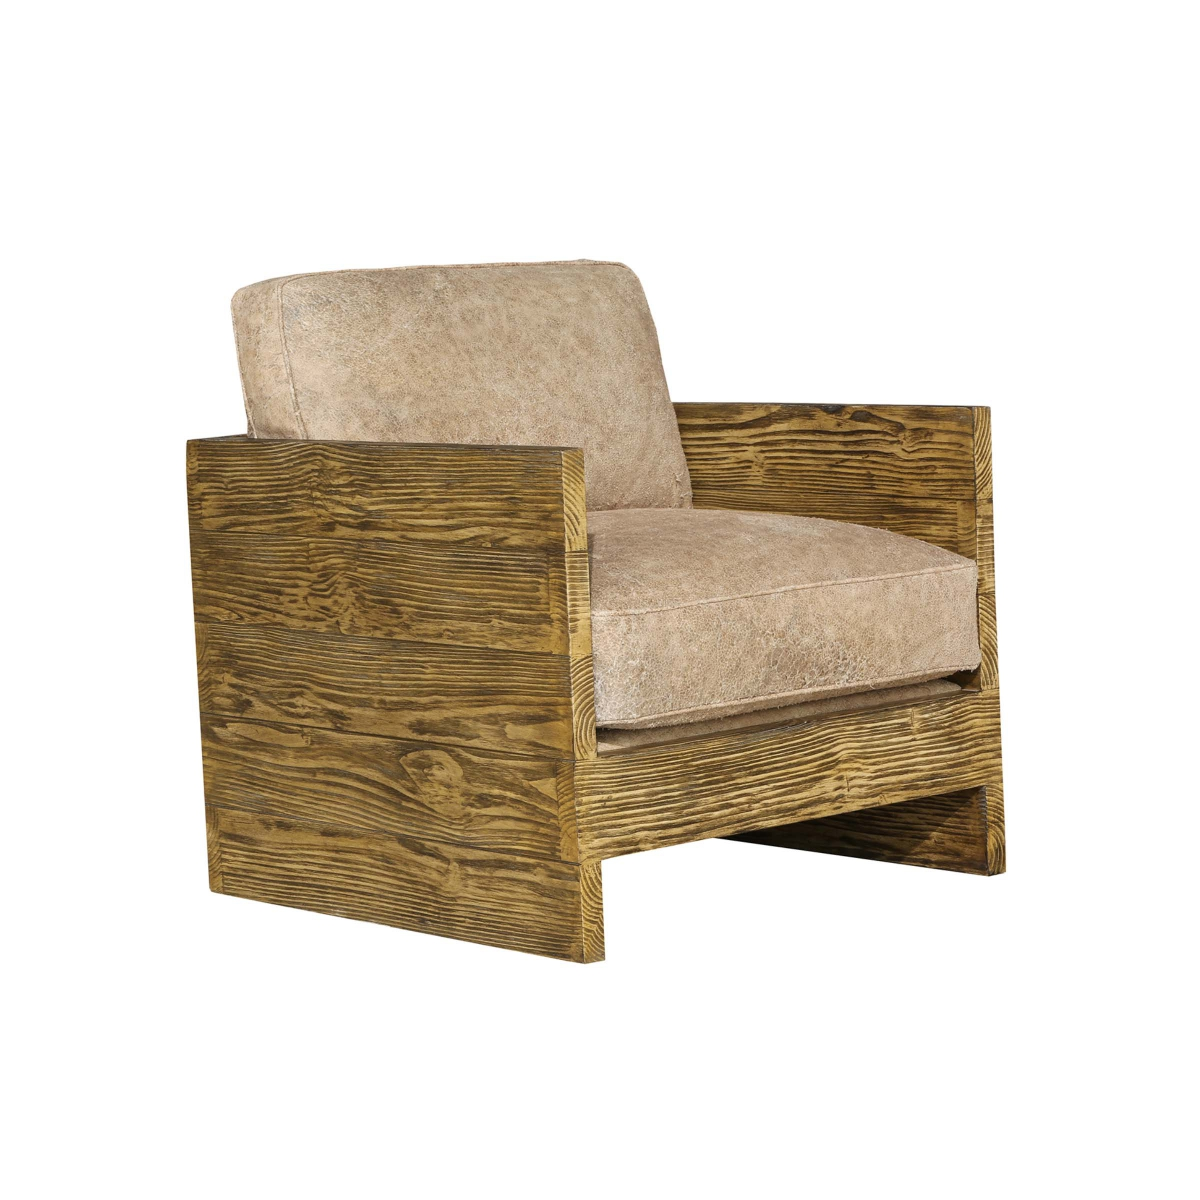 CARMEL - 1E Accent chair Desperado duster